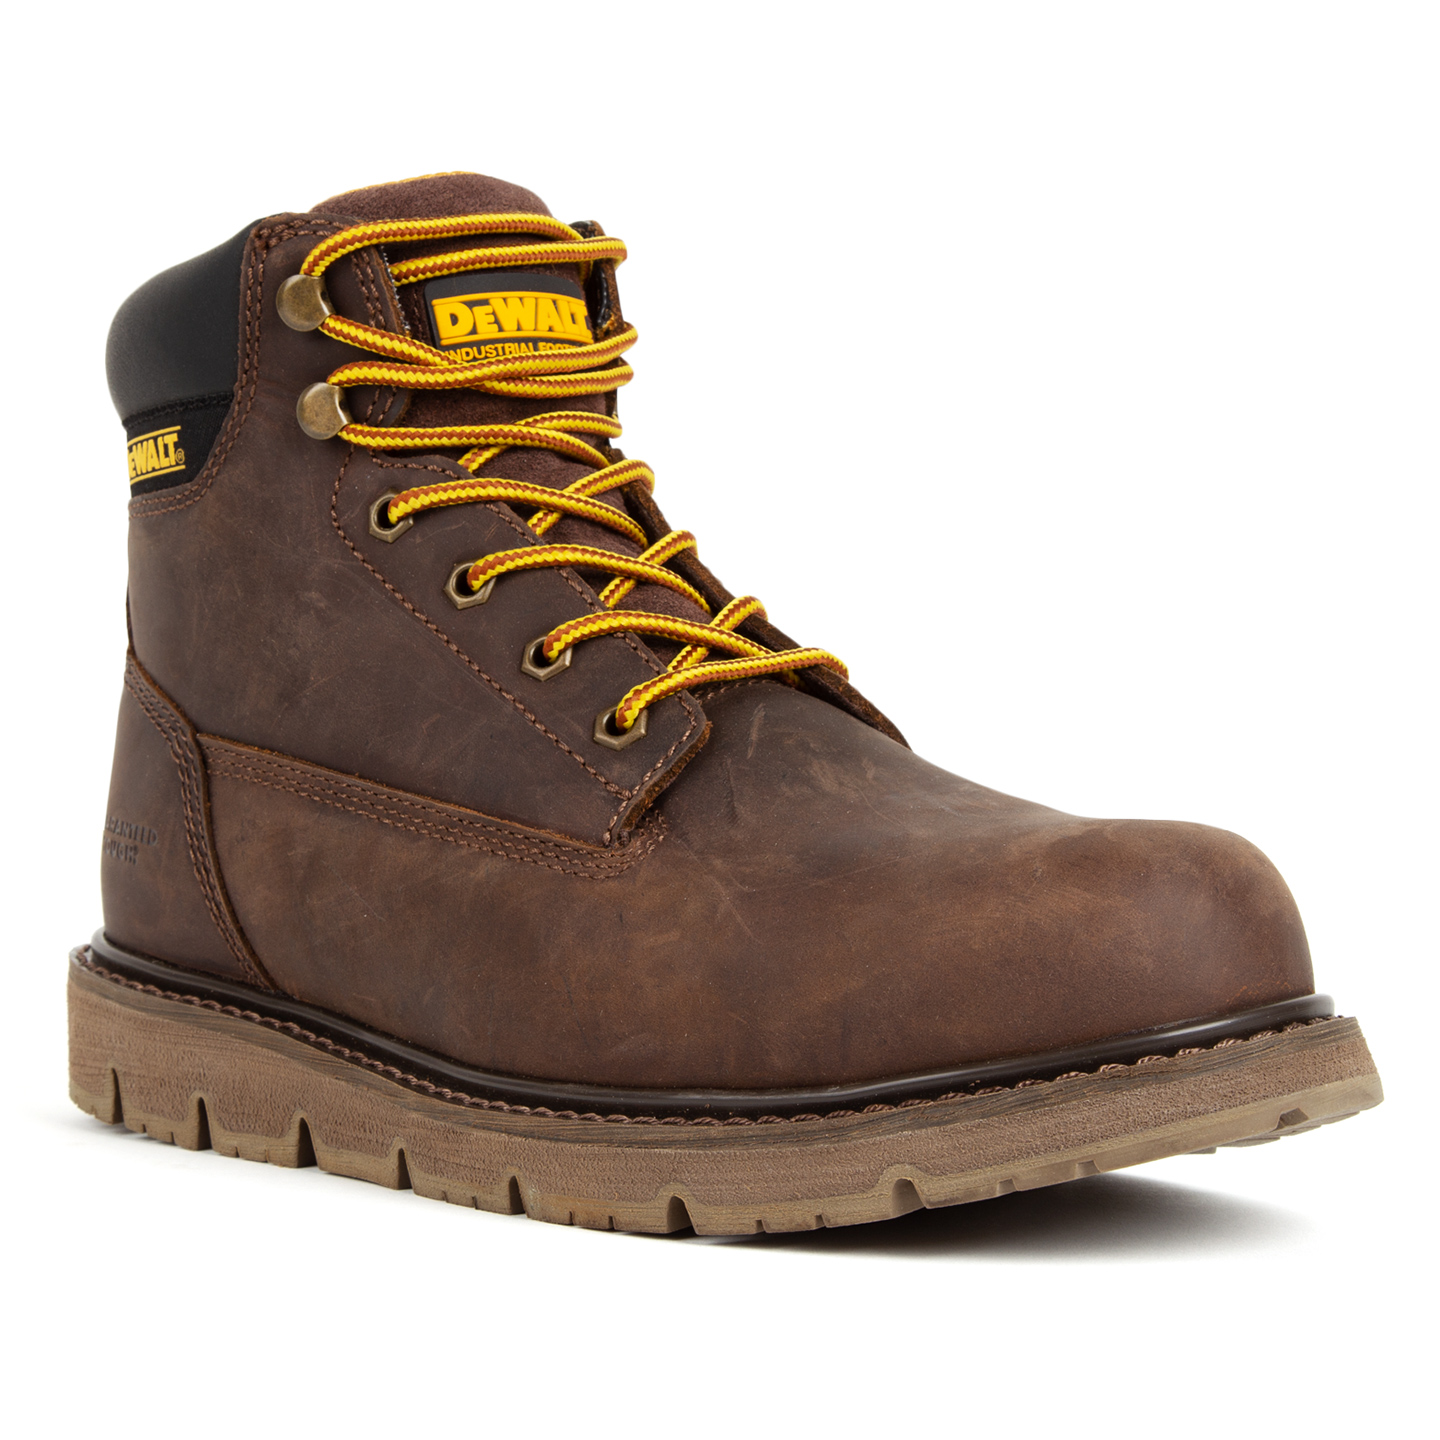 3c0783a6587 DEWALT® Flex Men s Steel Toe Brown Tie-Up Wedge Work BootsDEWALT® Flex Men s  Steel Toe Brown Tie-Up Wedge Work Boots